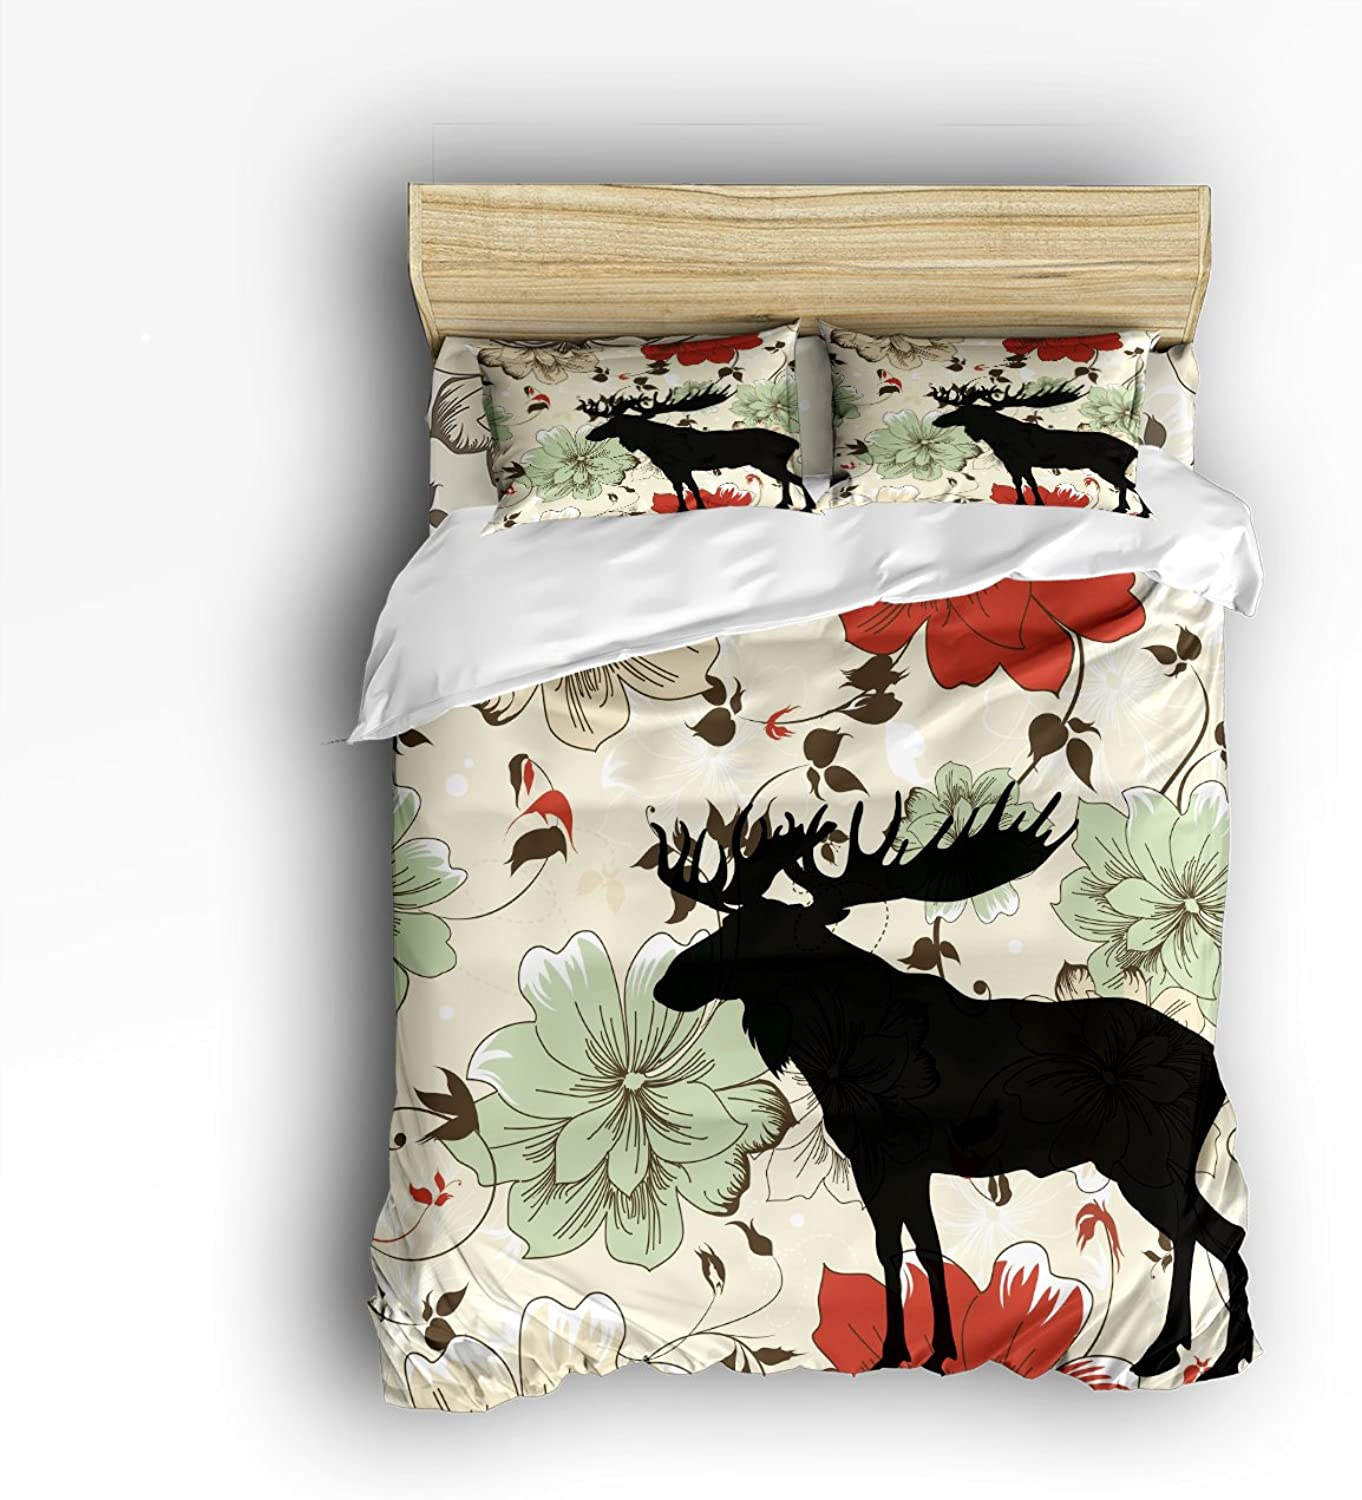 Libaoge 4 Piece Bed Sheets Set, Deer Silhouette with Retro Flowers Floral Print, 1 Flat Sheet 1 Duvet Cover and 2 Pillow Cases